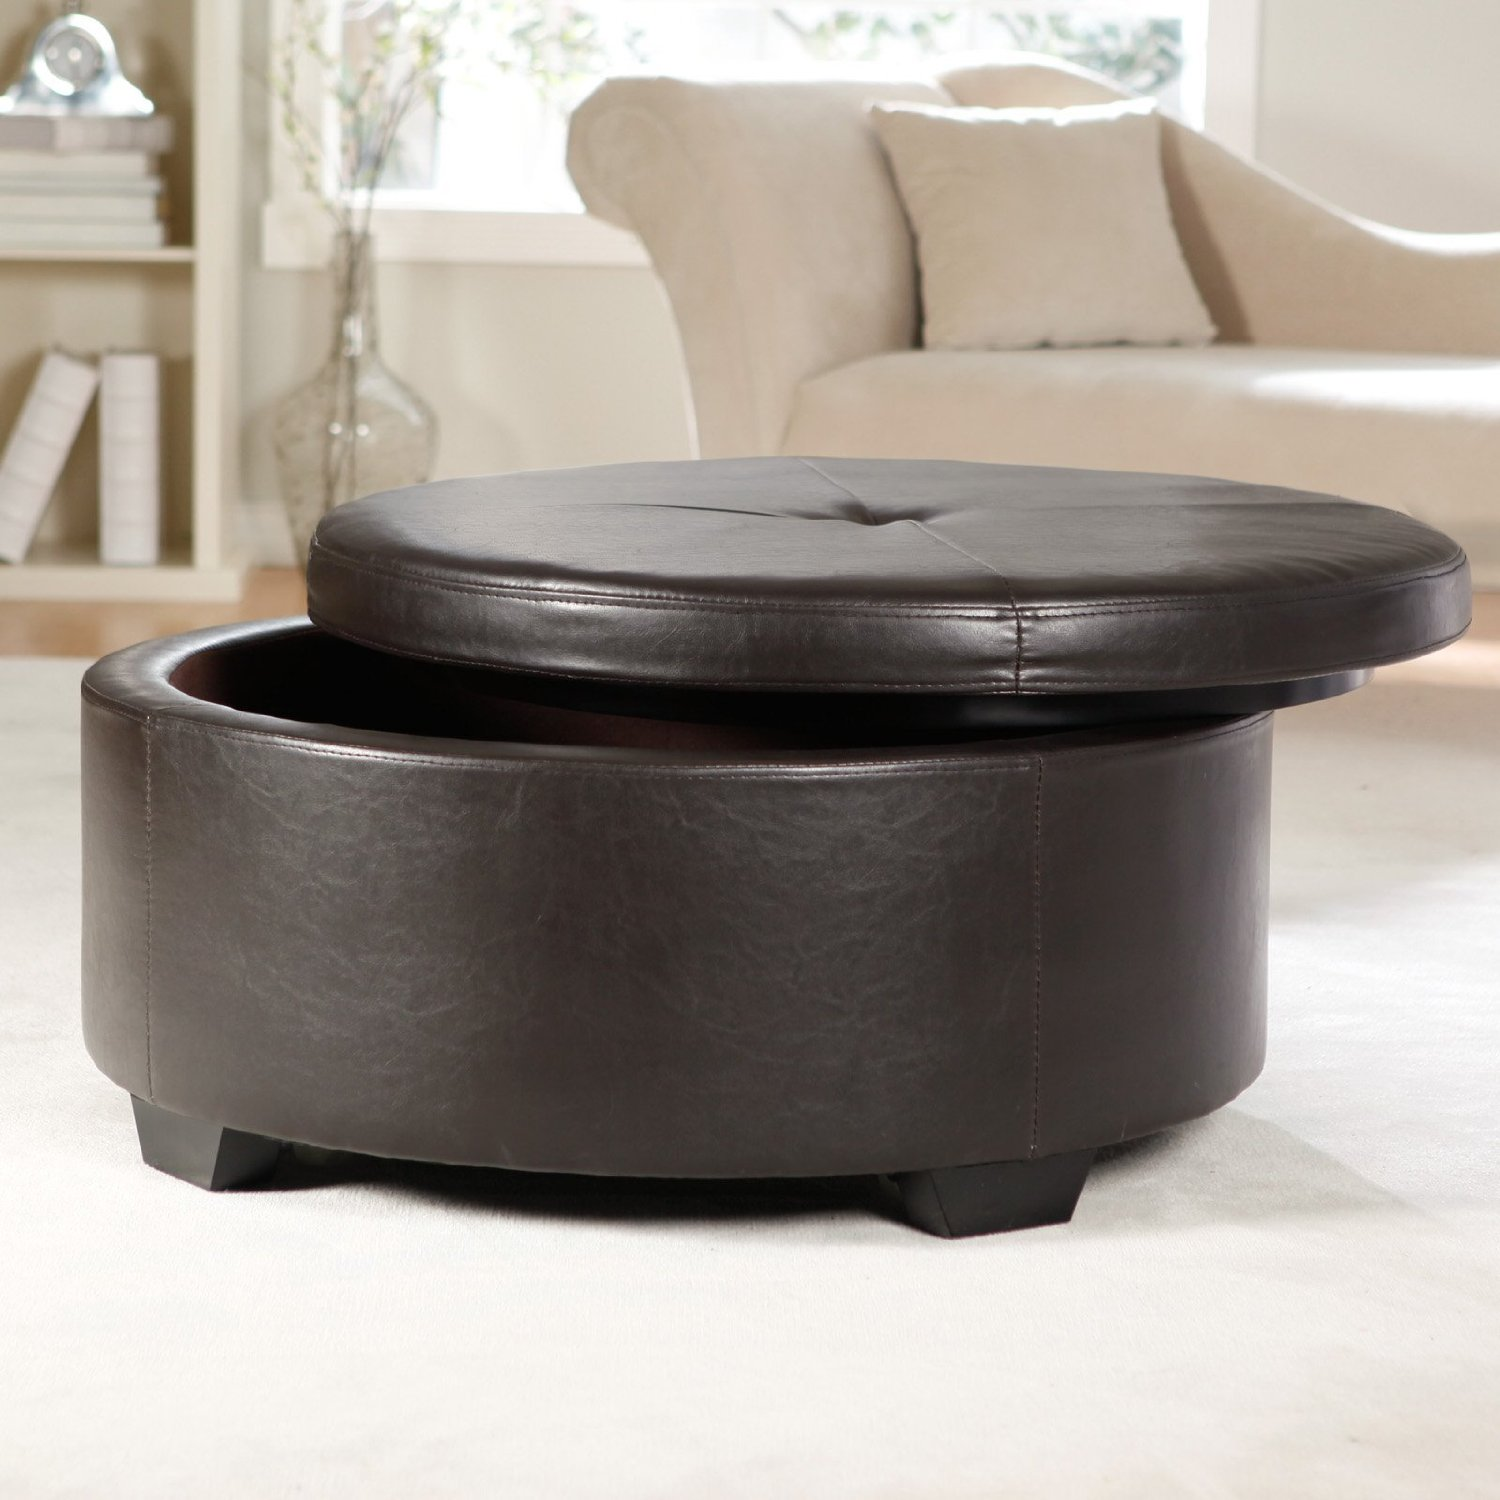 modern-black-round-ottoman-with-the-top-as-a-lid-storage-as-well-as-coffee-tables-with-storage-also-dining-room-furniture-round-ottoman-coffee-tables (Image 3 of 10)